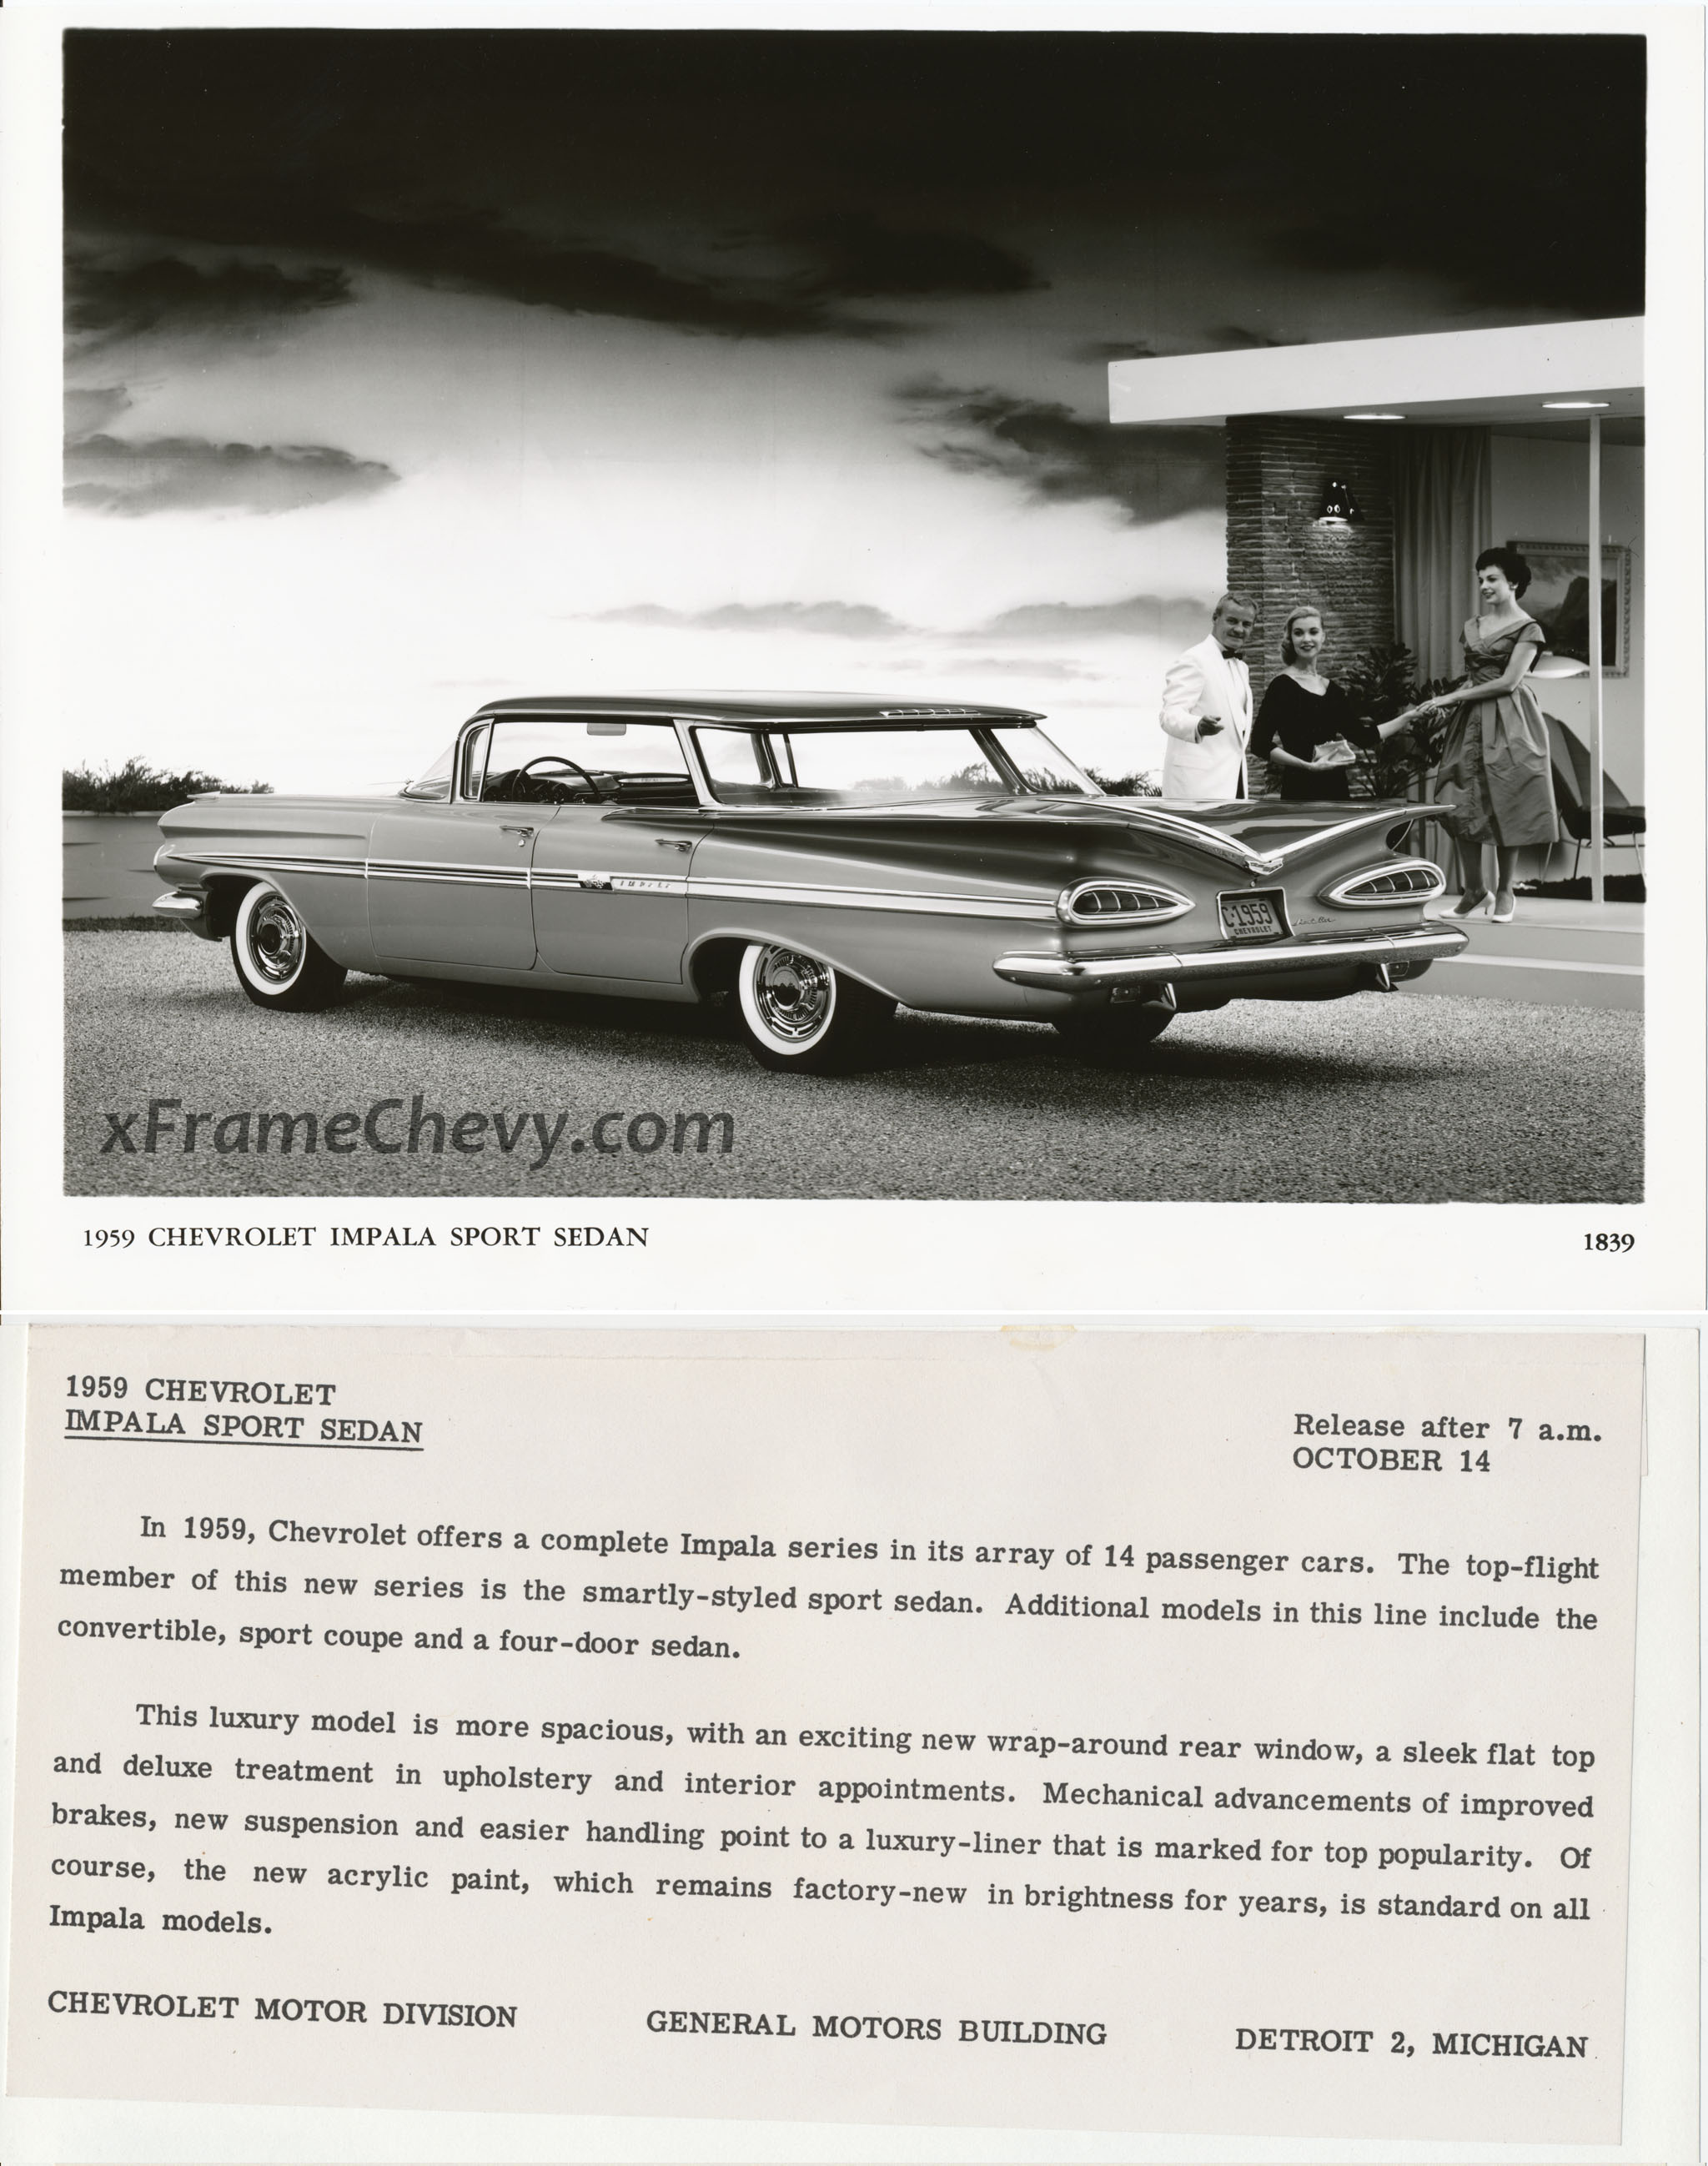 Gm press release photo 1959 chevrolet impala sport sedan for Chevrolet division of general motors